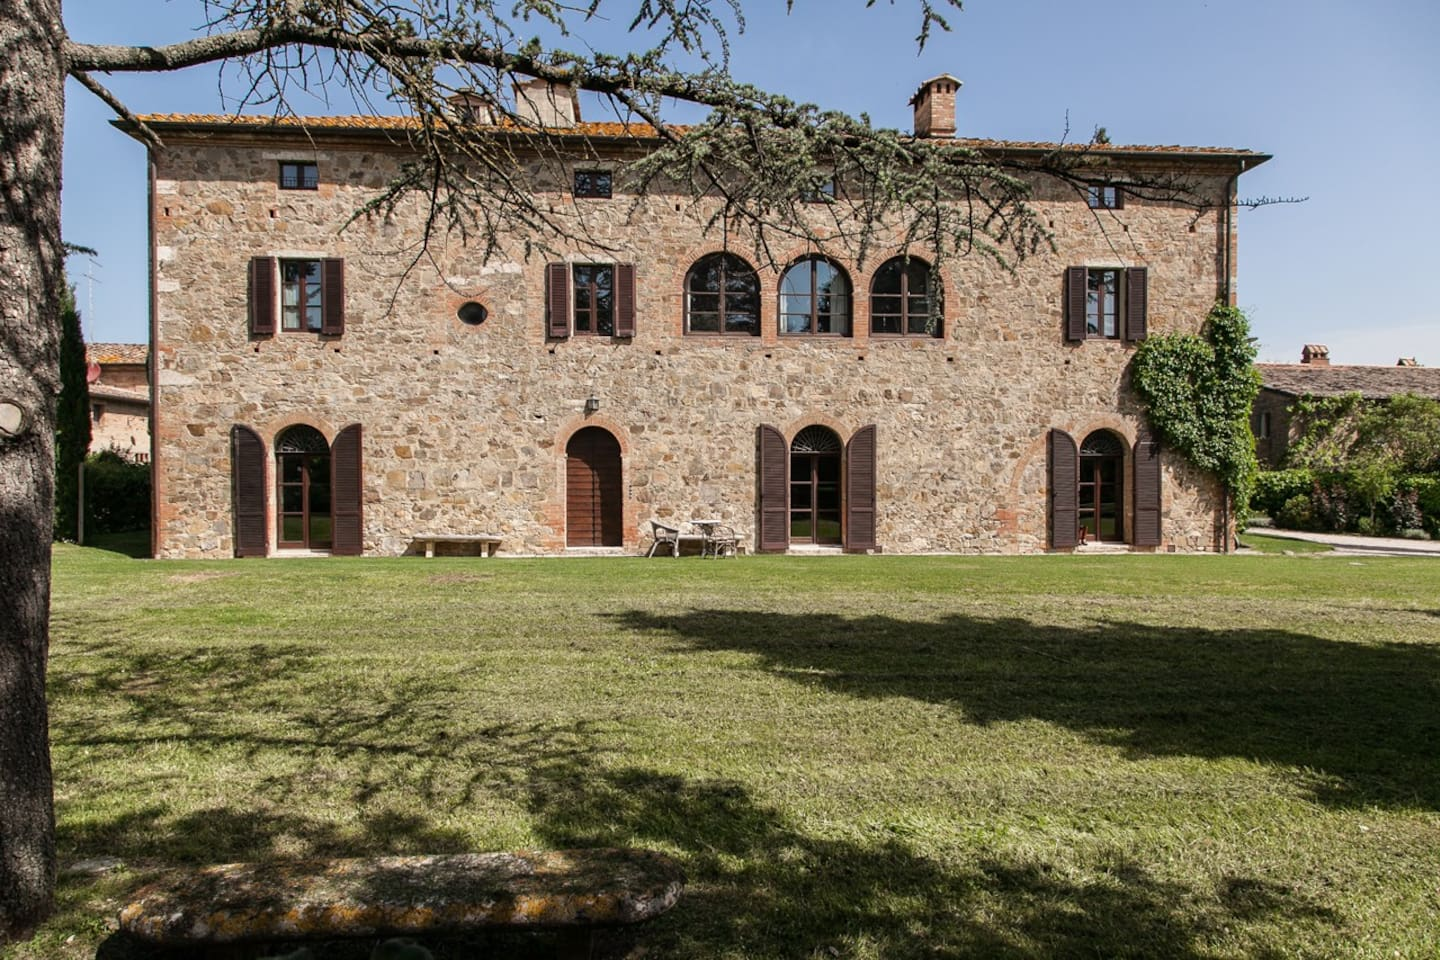 CHARMING COUNTRY HOUSE - Montalcino